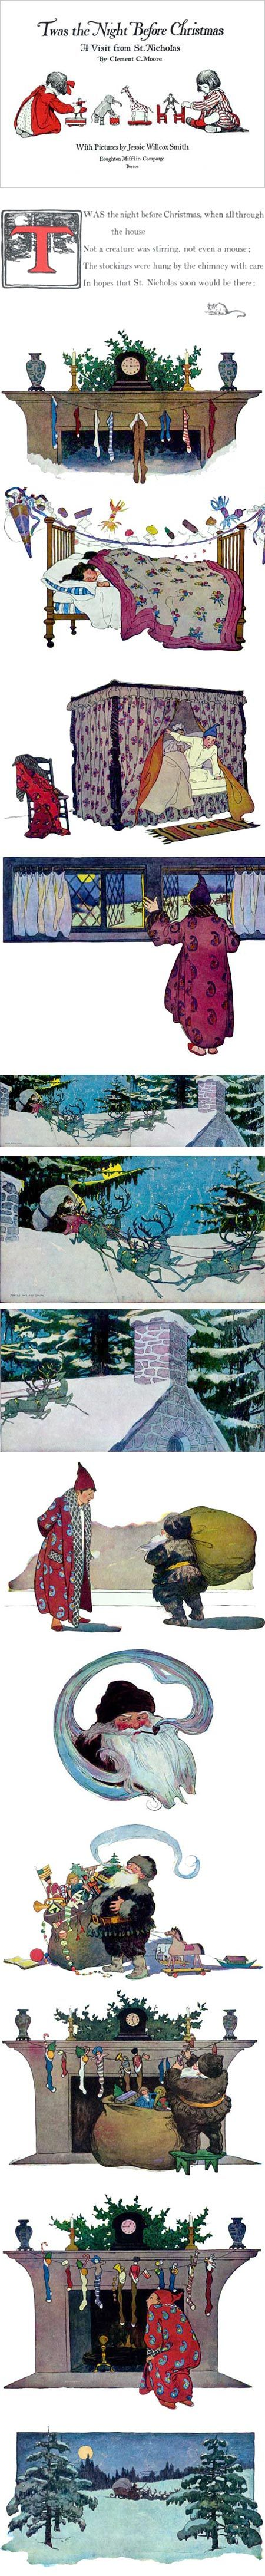 Twas the Night Before Christmas: A Visit from St. Nicholas illustrations by Jessie Willcox Smith.... this is the one i had as a child....that my mother read each year! <3